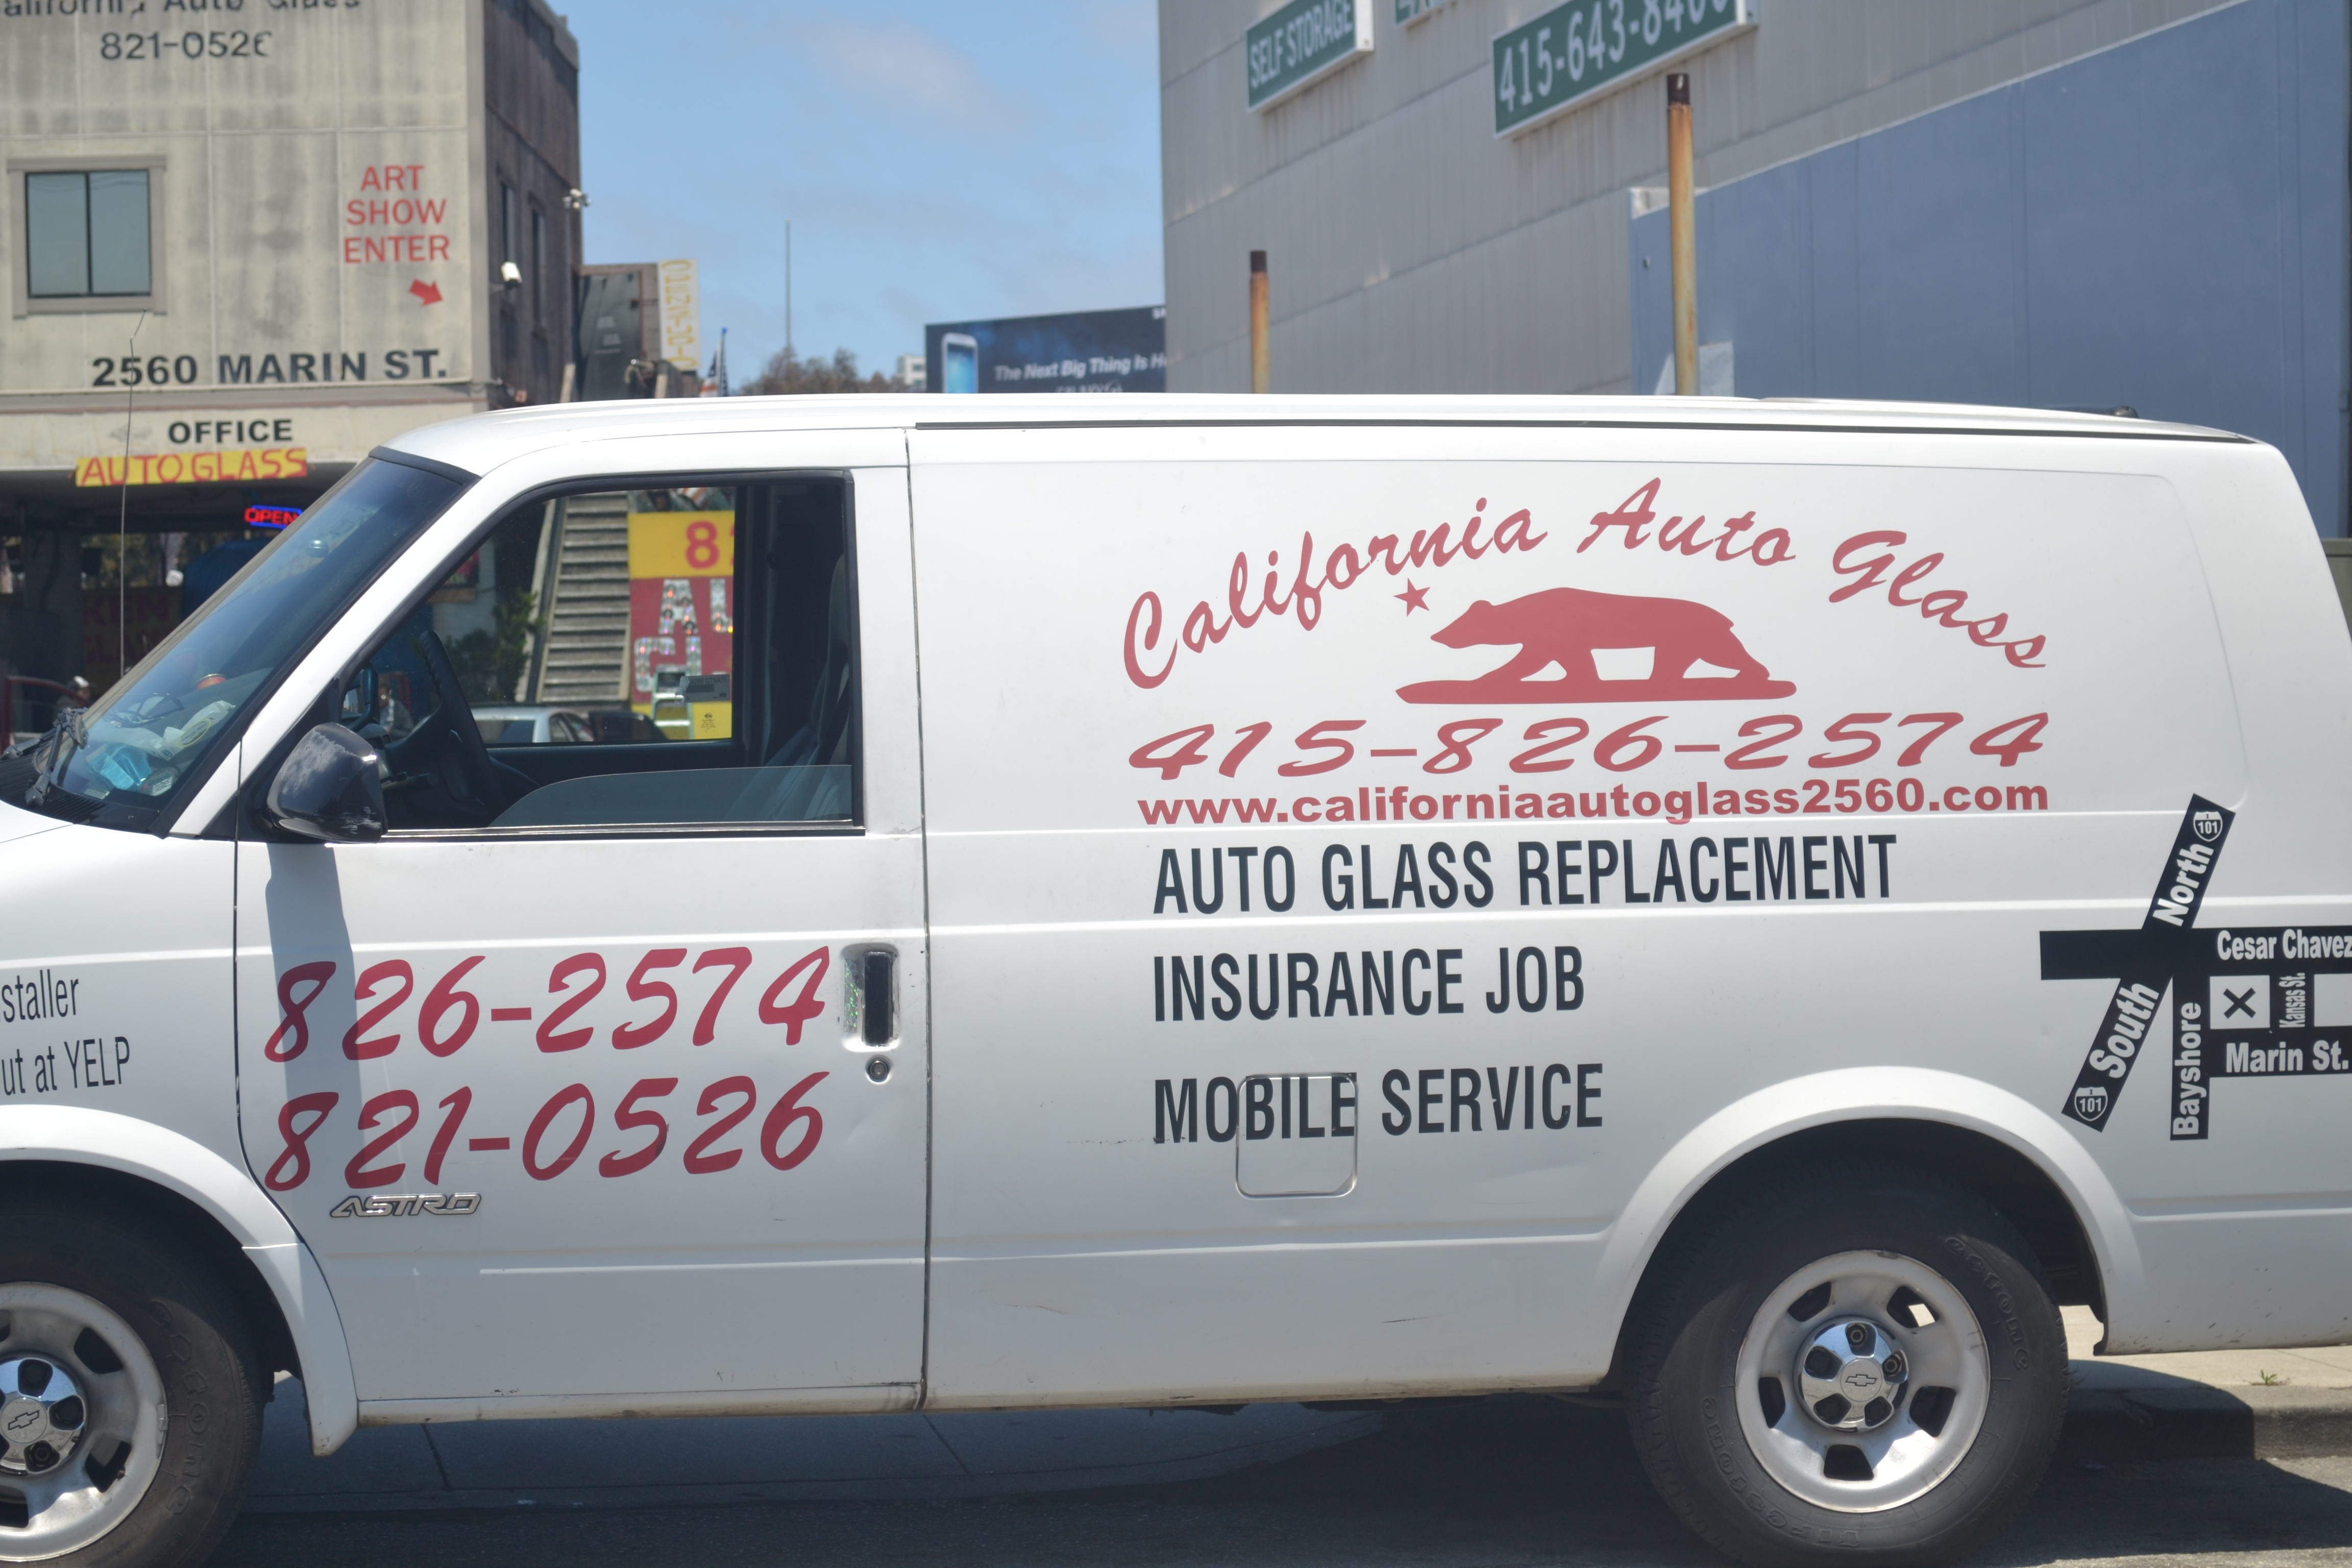 Windshield replacement in san francisco ca reviews eventelaan Image collections